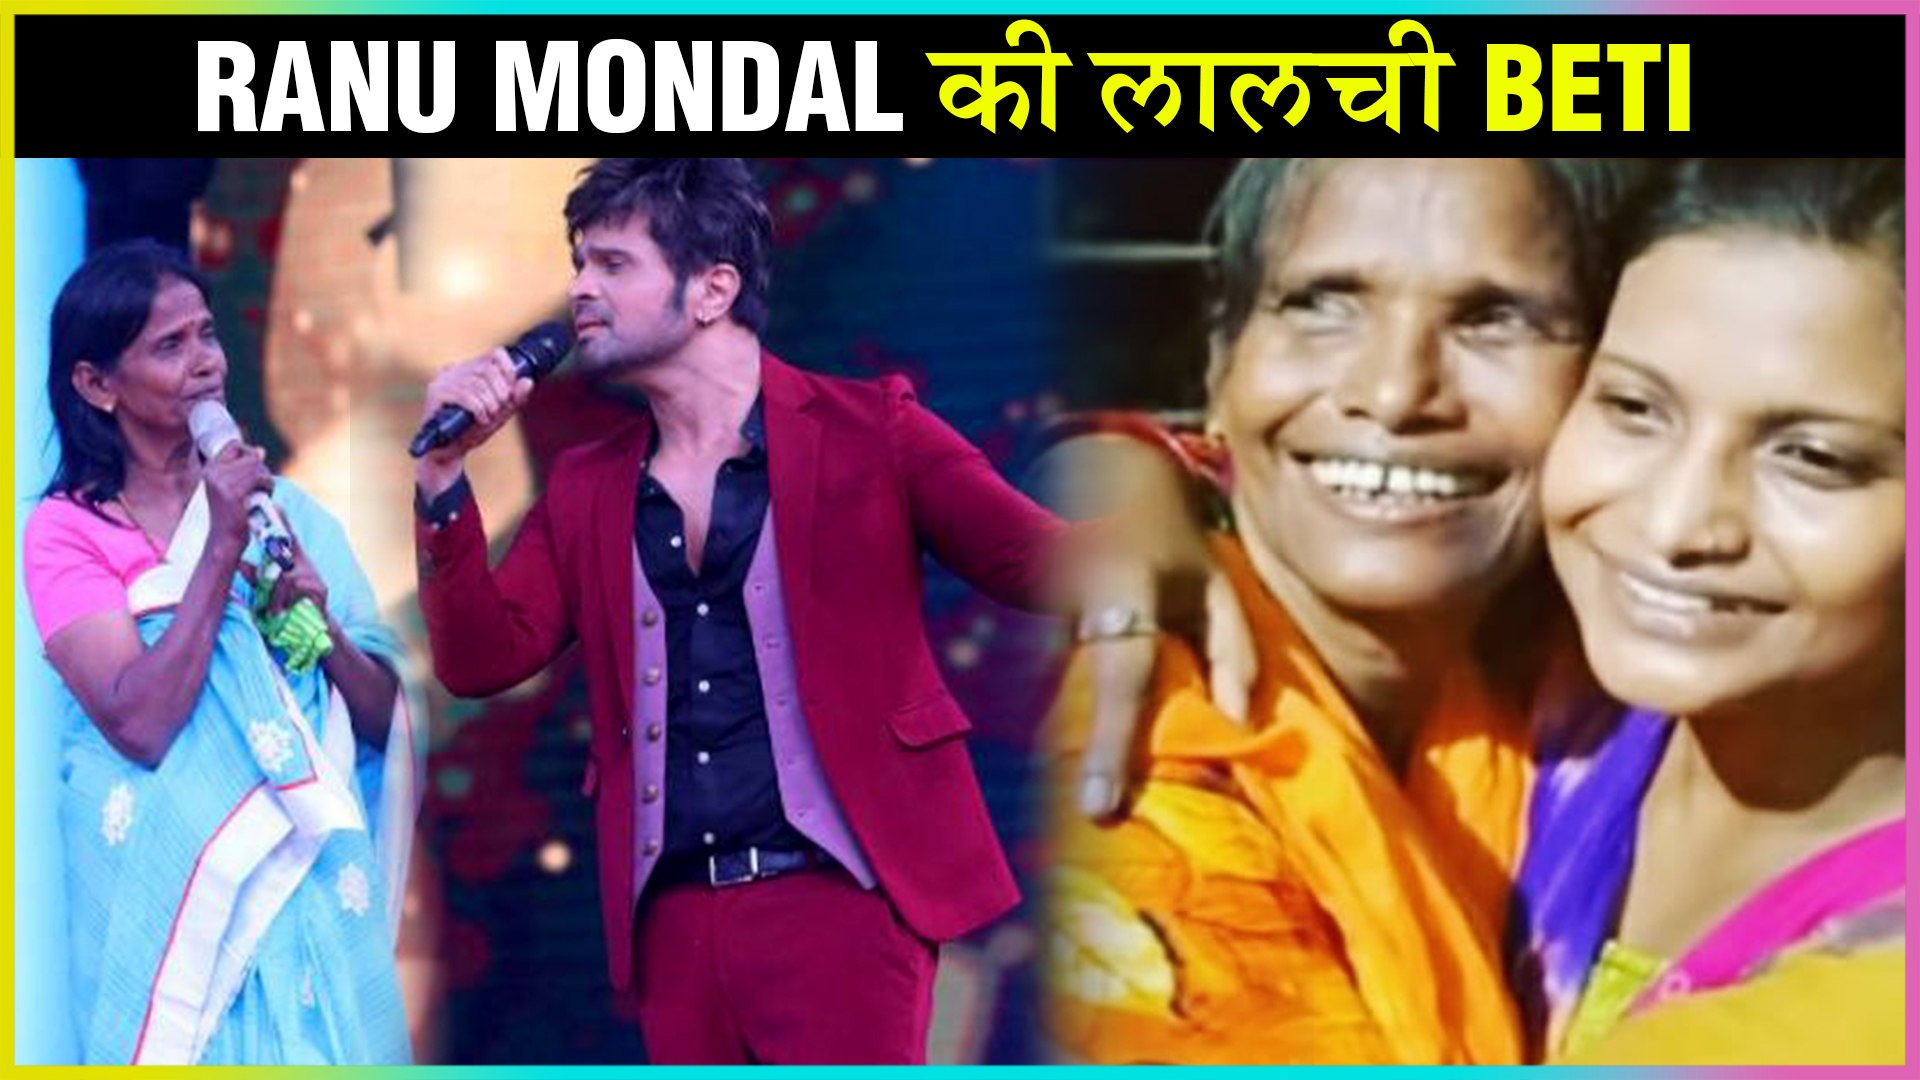 Ranu Mondal VIRAL Superstar's Daughter Back In Her LIFE After 10 Years For Money & Fame?